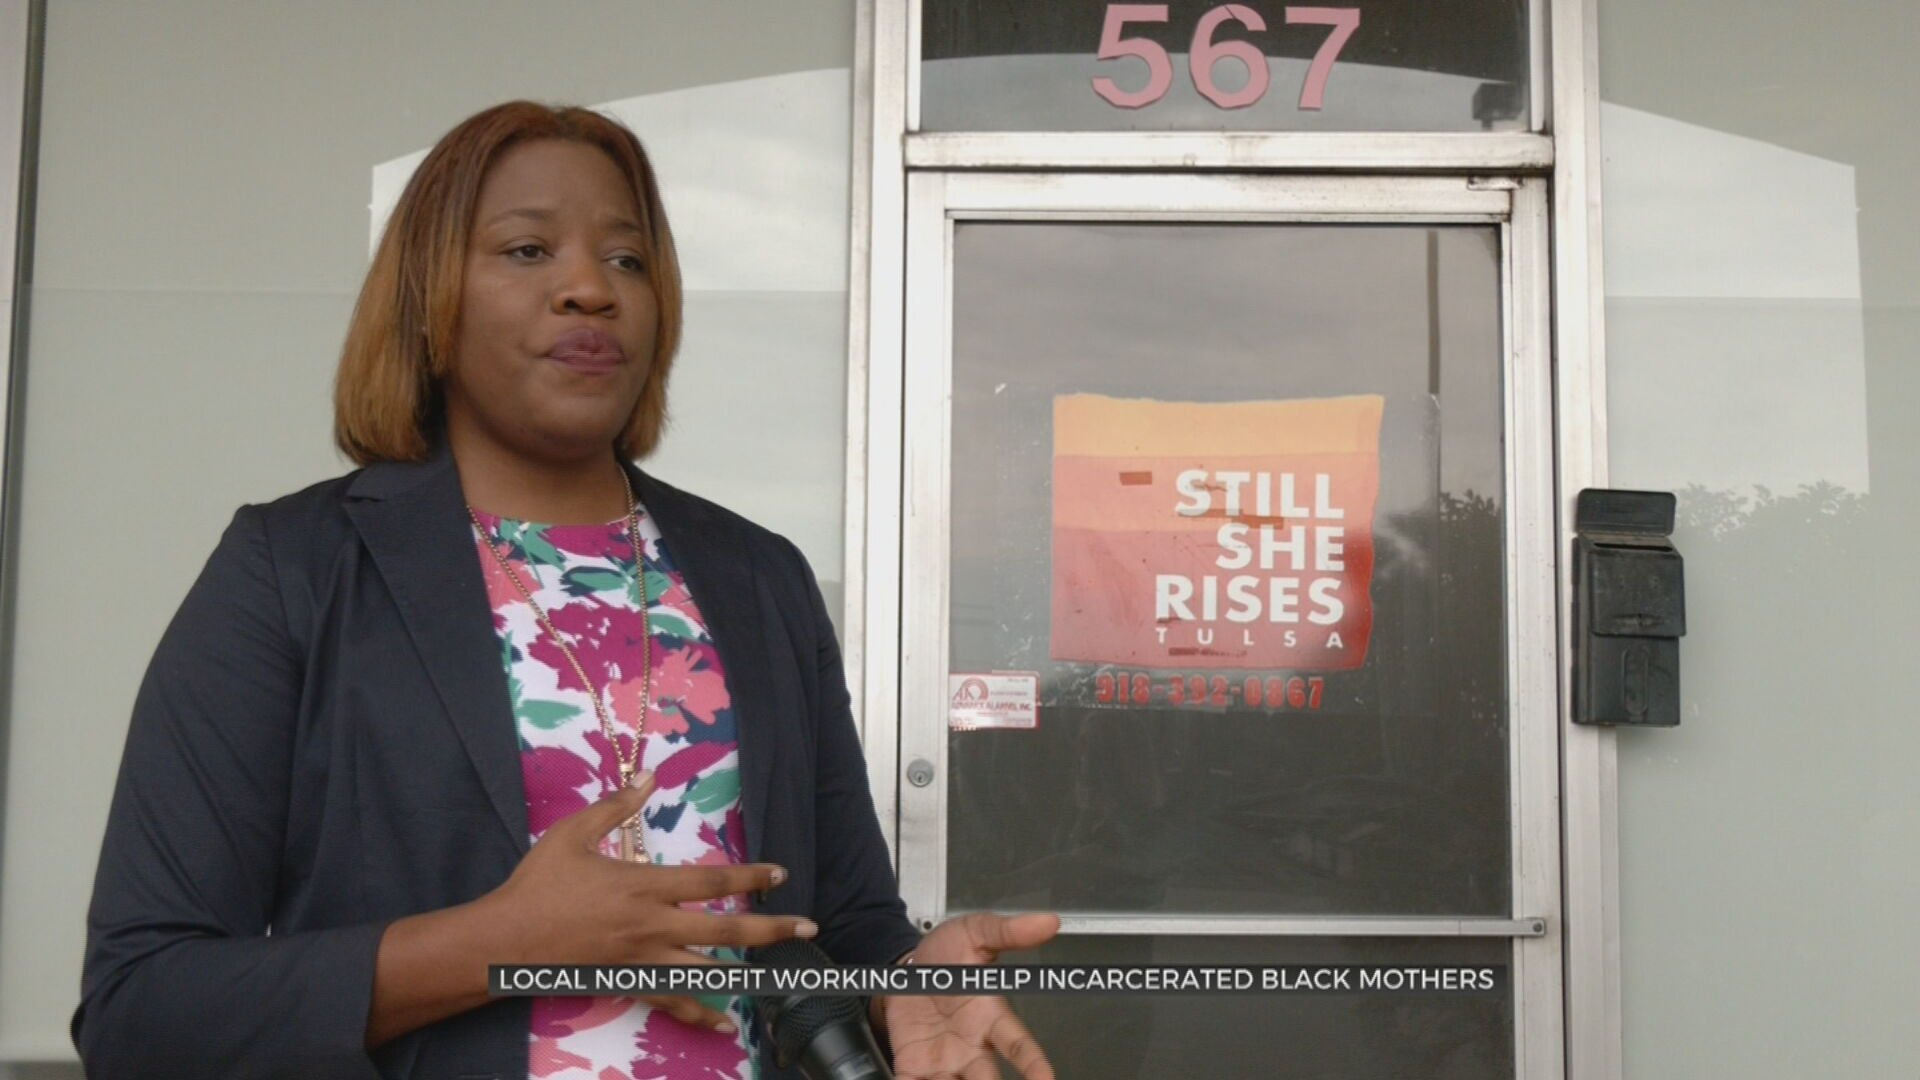 Local Non-Profit Working To Help Incarcerated Mothers Receives Grant